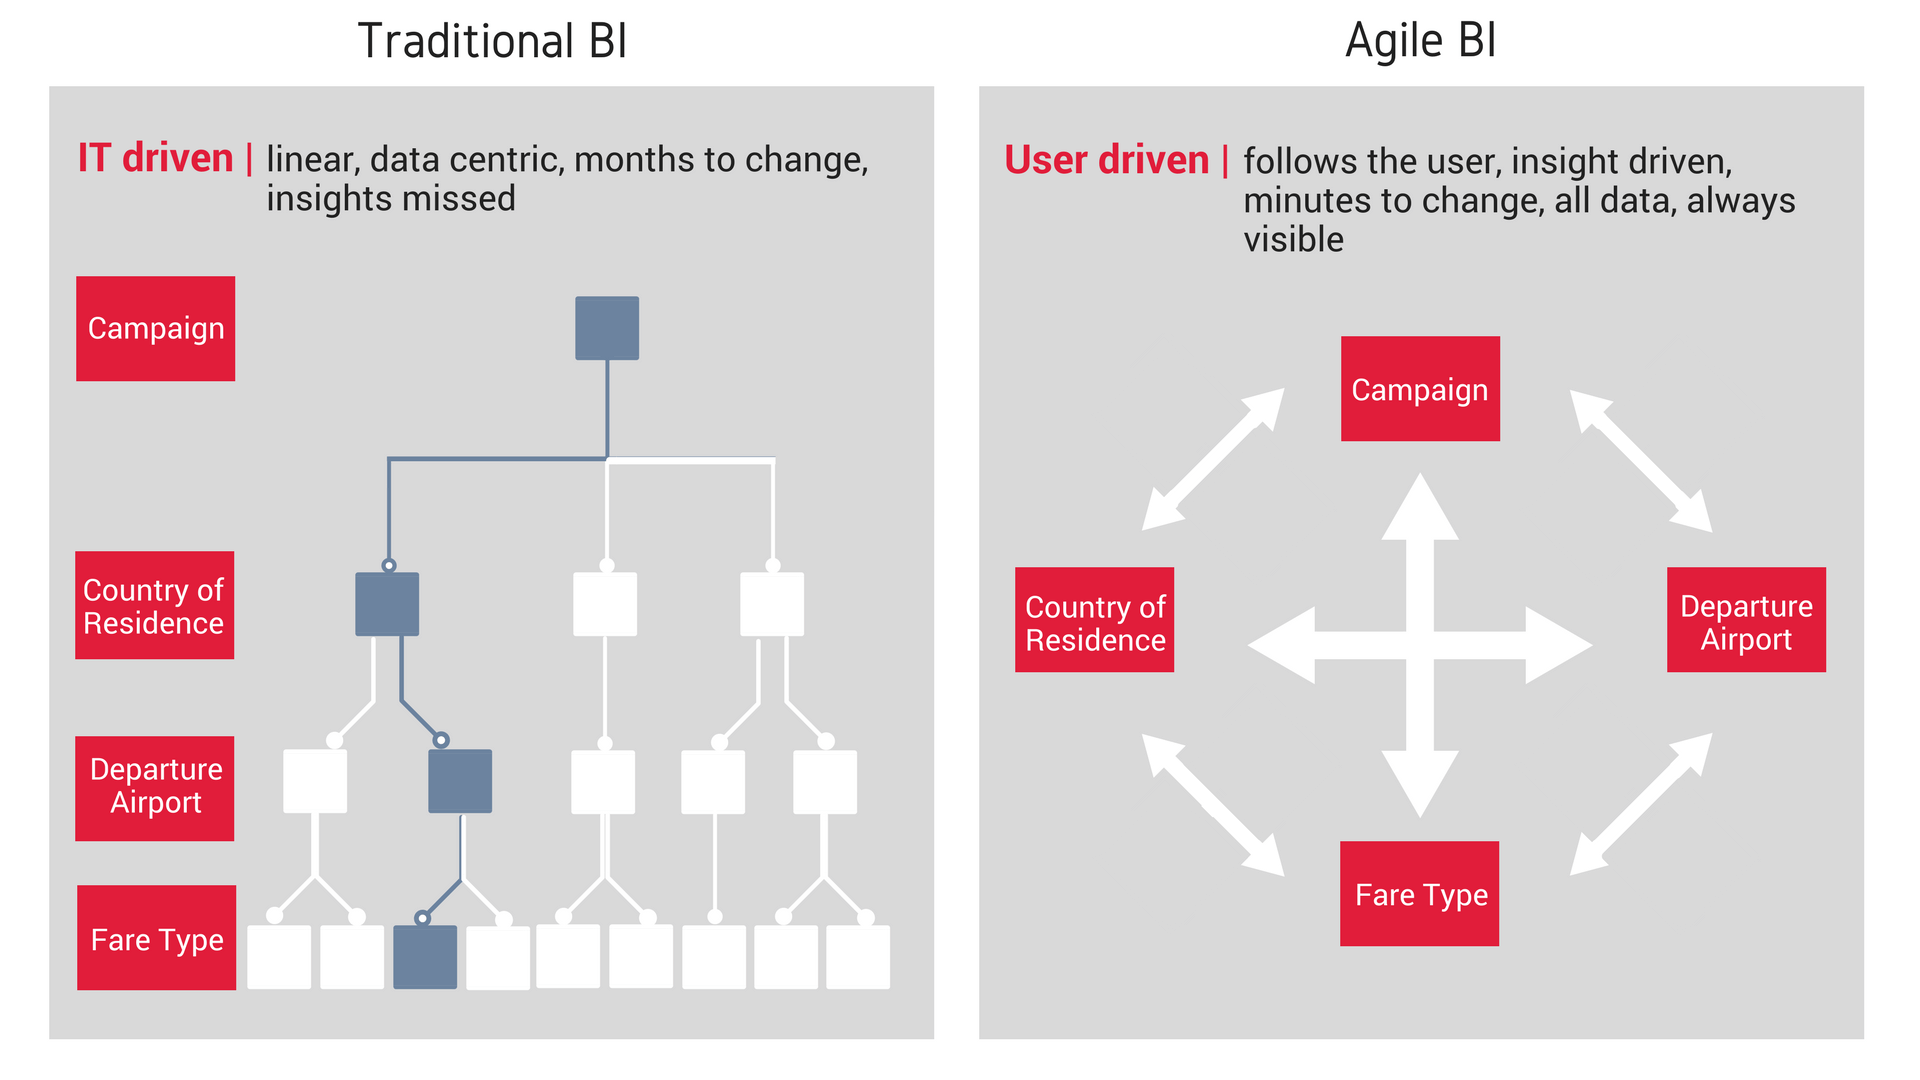 Comparison of Agile and Traditional BI